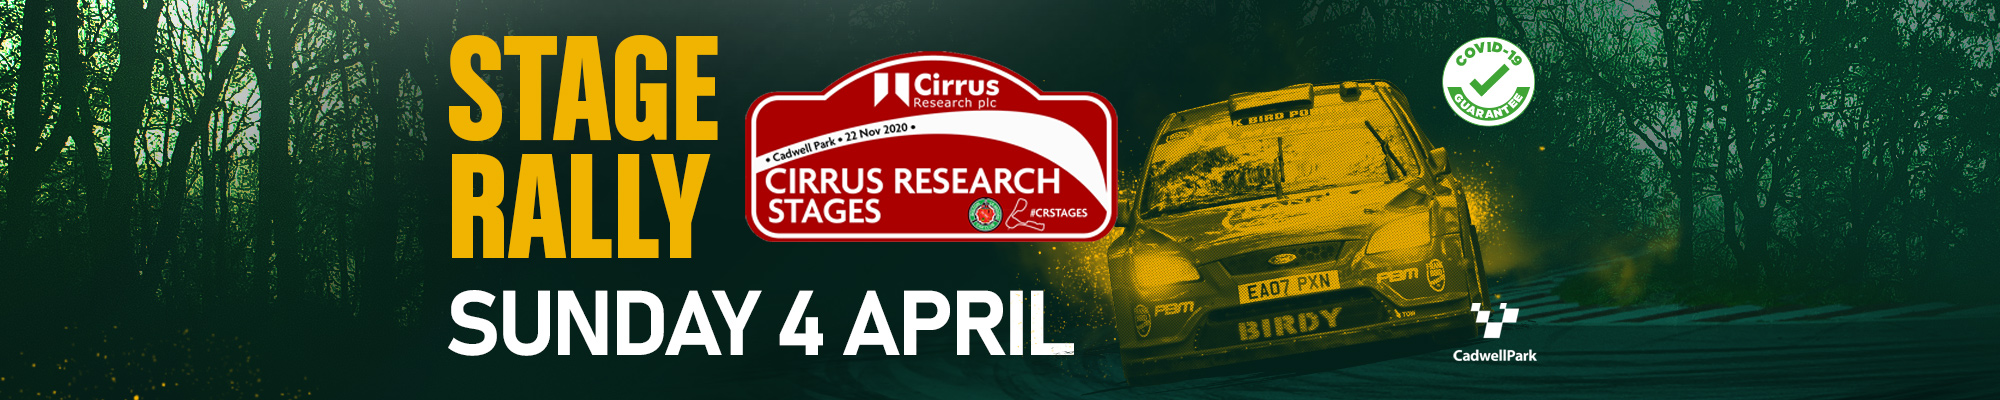 Cirrus Research Stages at Cadwell Park Rally